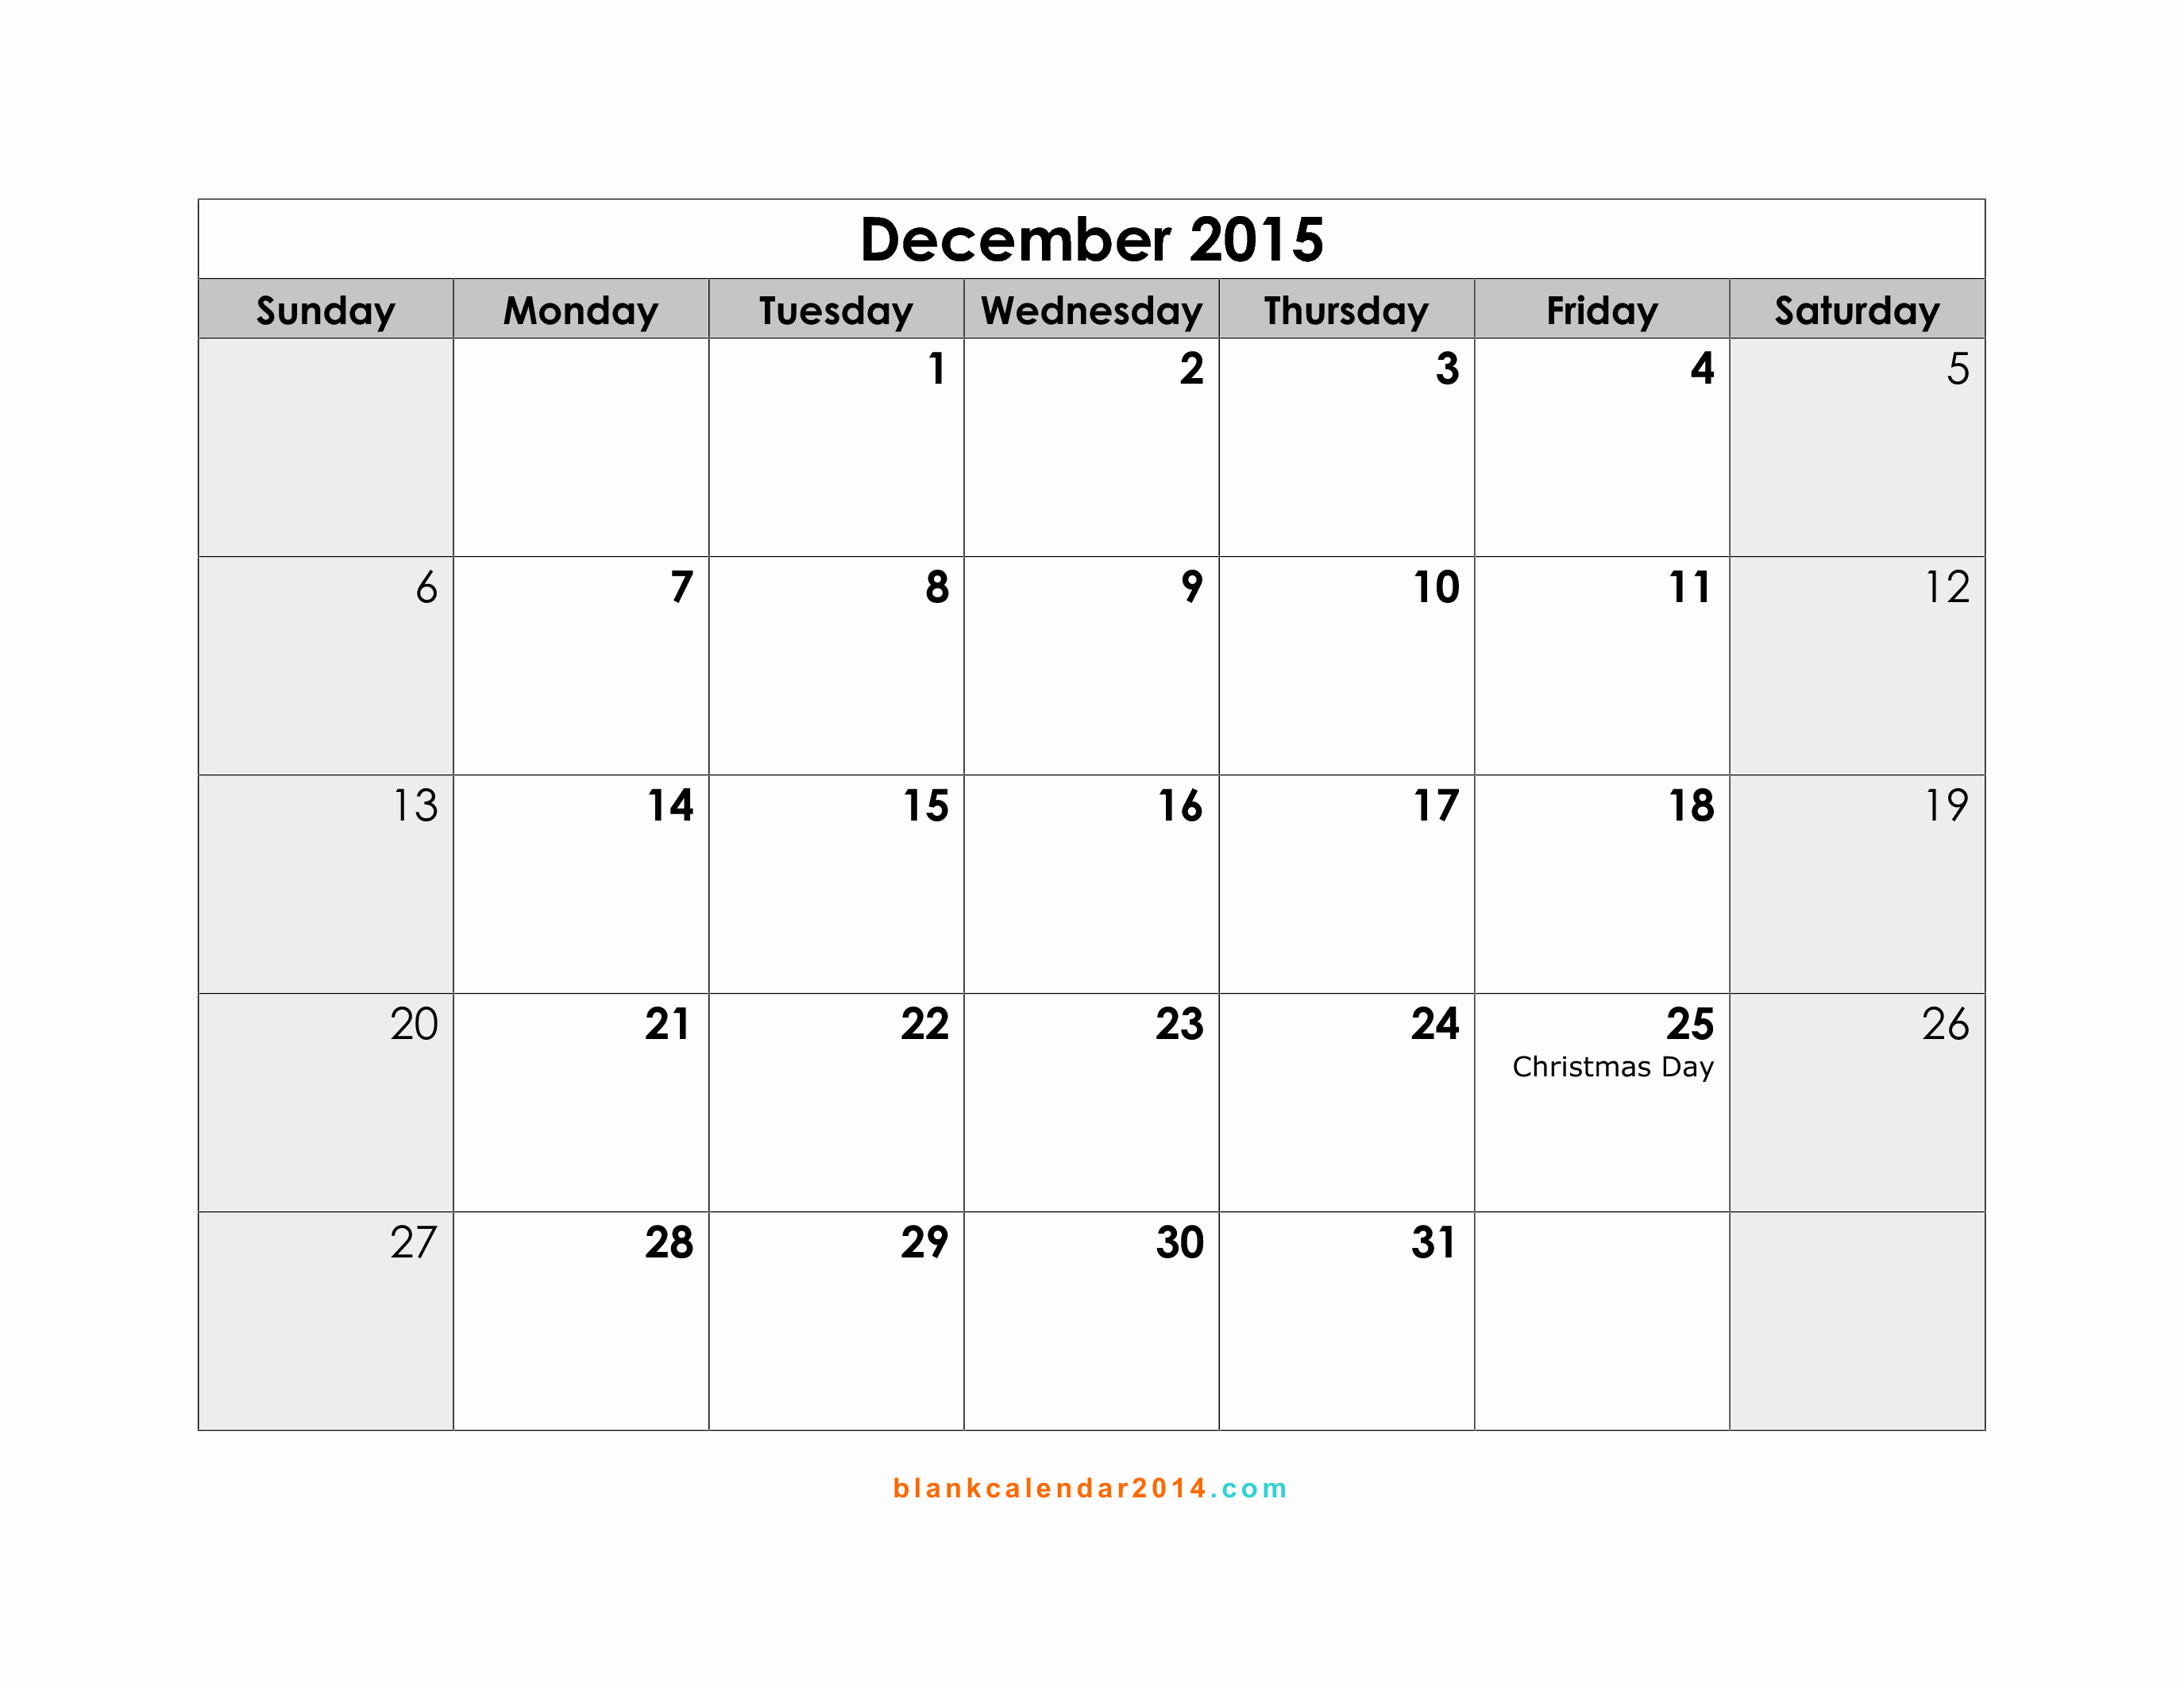 Calendar 2015 Printable with Holidays Elegant 2015 Calendar Template with Holidays